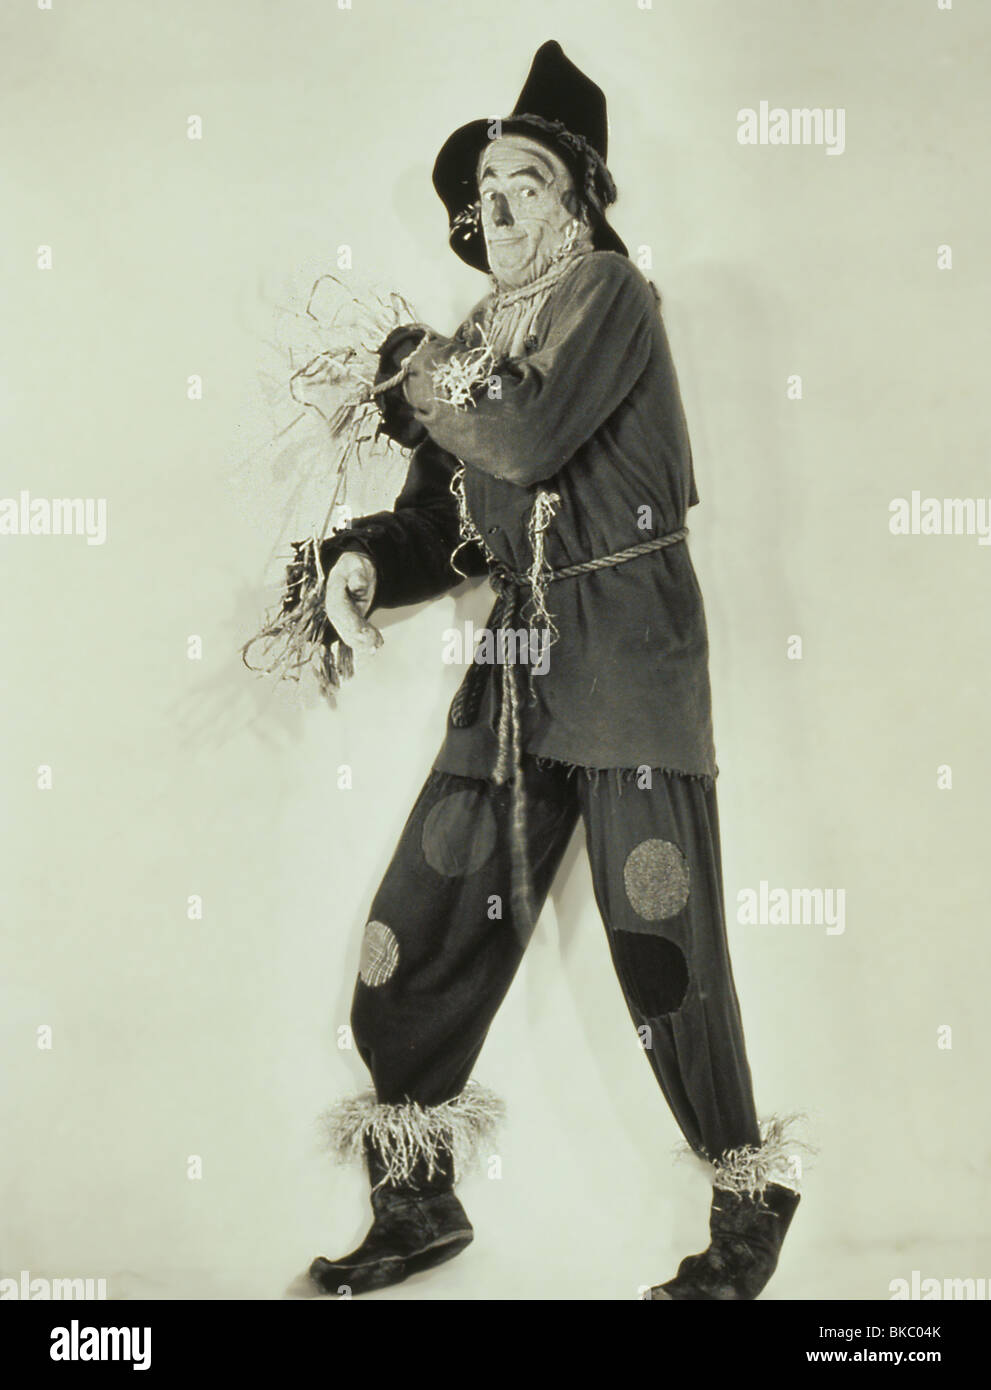 WIZARD OF OZ, THE RAY BOLGER WOZ 105 - Stock Image